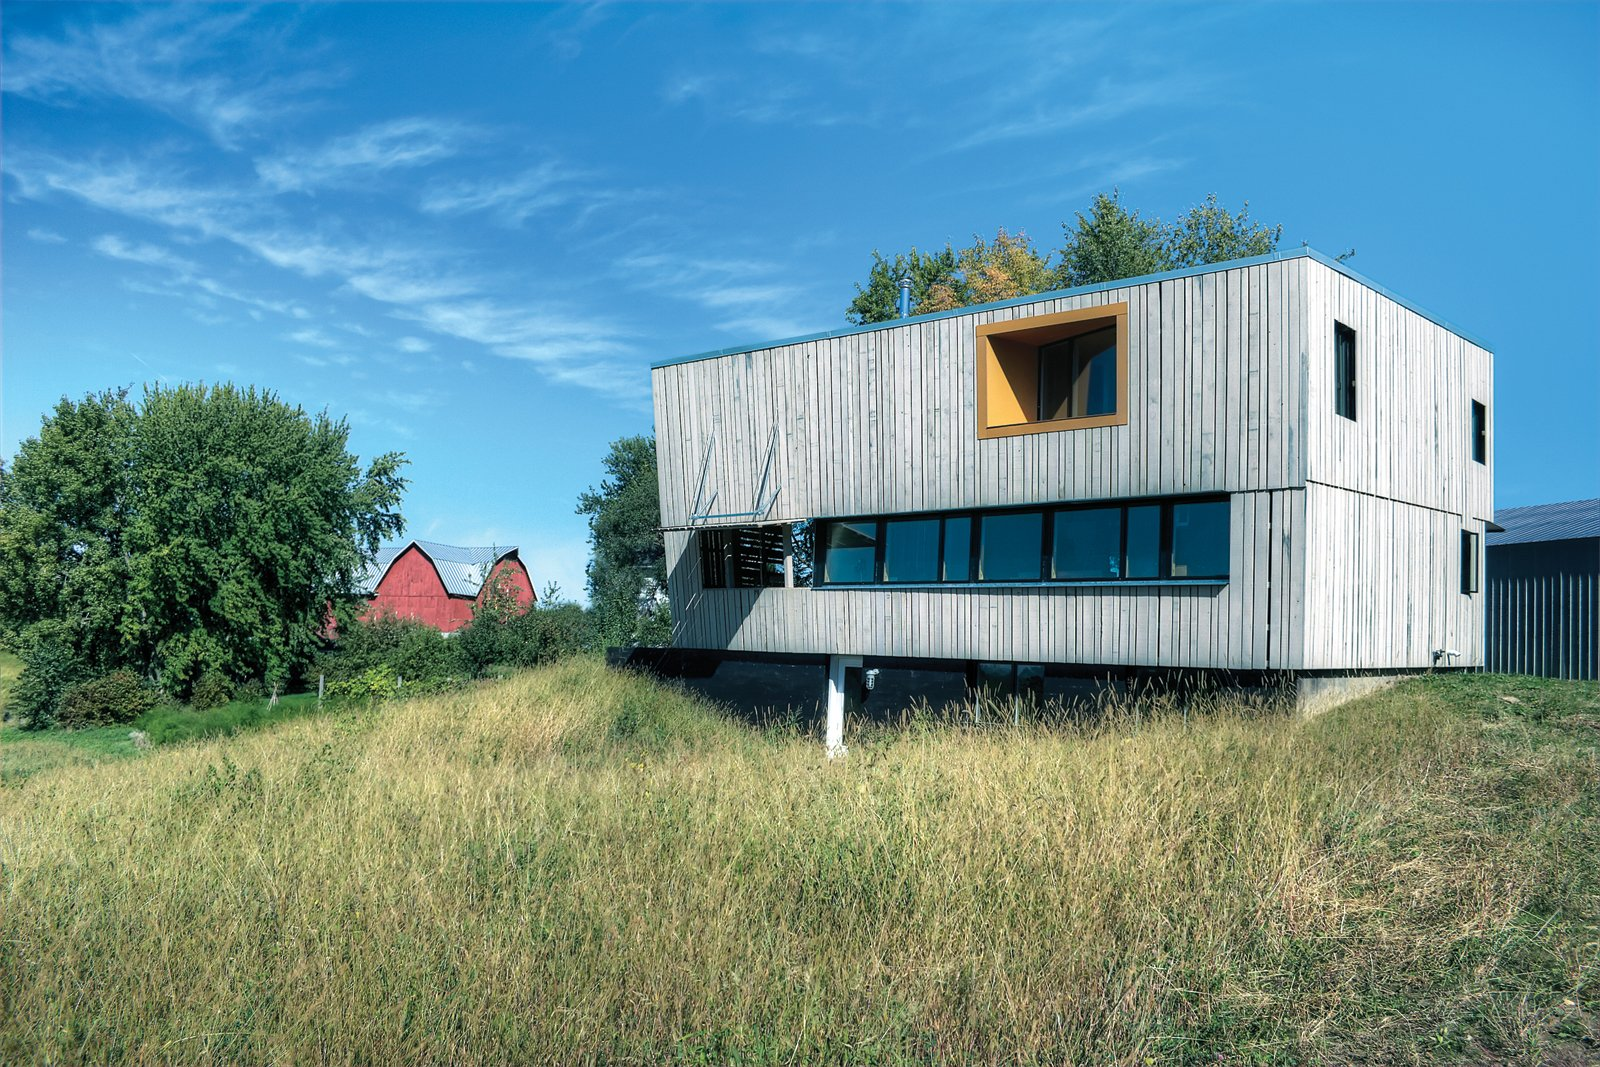 Exterior and Prefab Building Type At $167 per square foot, this high-design, low-cost barn in rural Wisconsin is an American idyll.    Striking Designs in Wisconsin by William Lamb